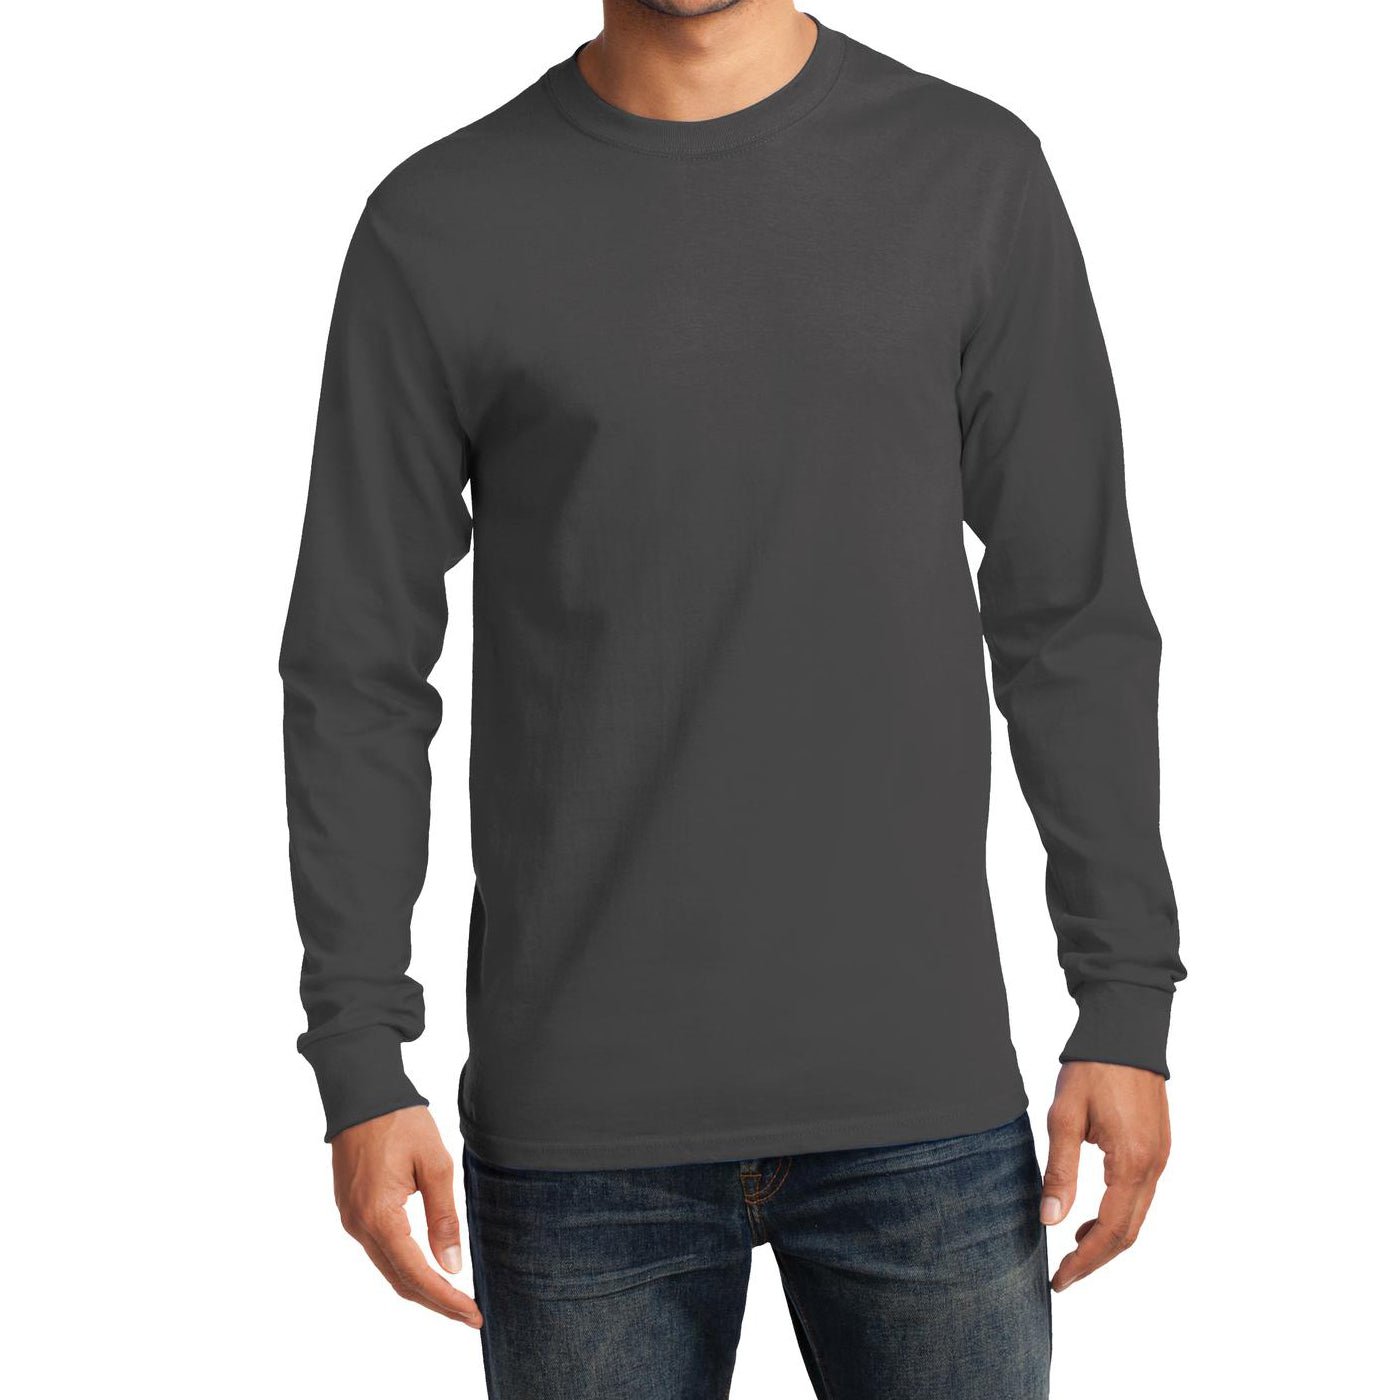 Men's Long Sleeve Essential Tee - Charcoal - Front